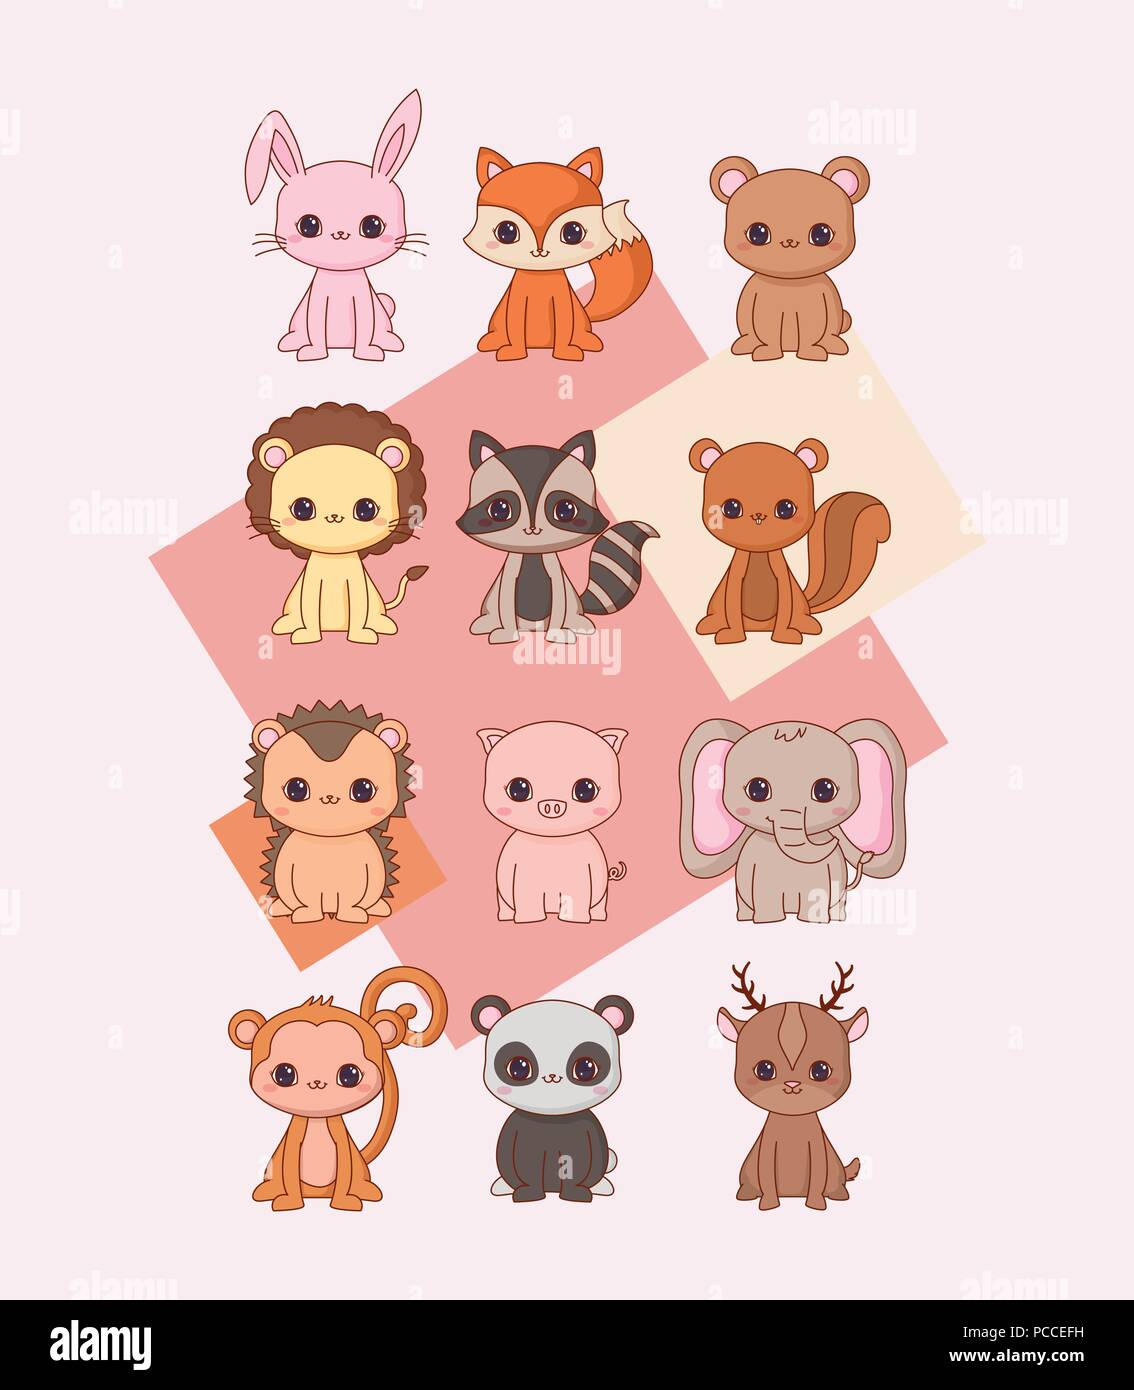 Image of: Pink Background Kawaii Animals Icon Set Over Pink Background Colorful Design Vector Illustration Alamy Kawaii Animals Icon Set Over Pink Background Colorful Design